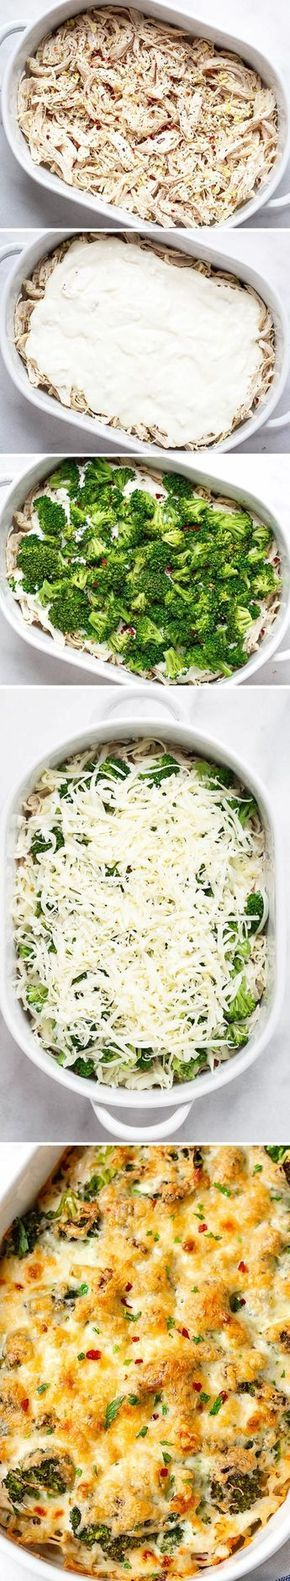 Broccoli Chicken Casserole with Cream Cheese and Mozzarella #foodrecipies